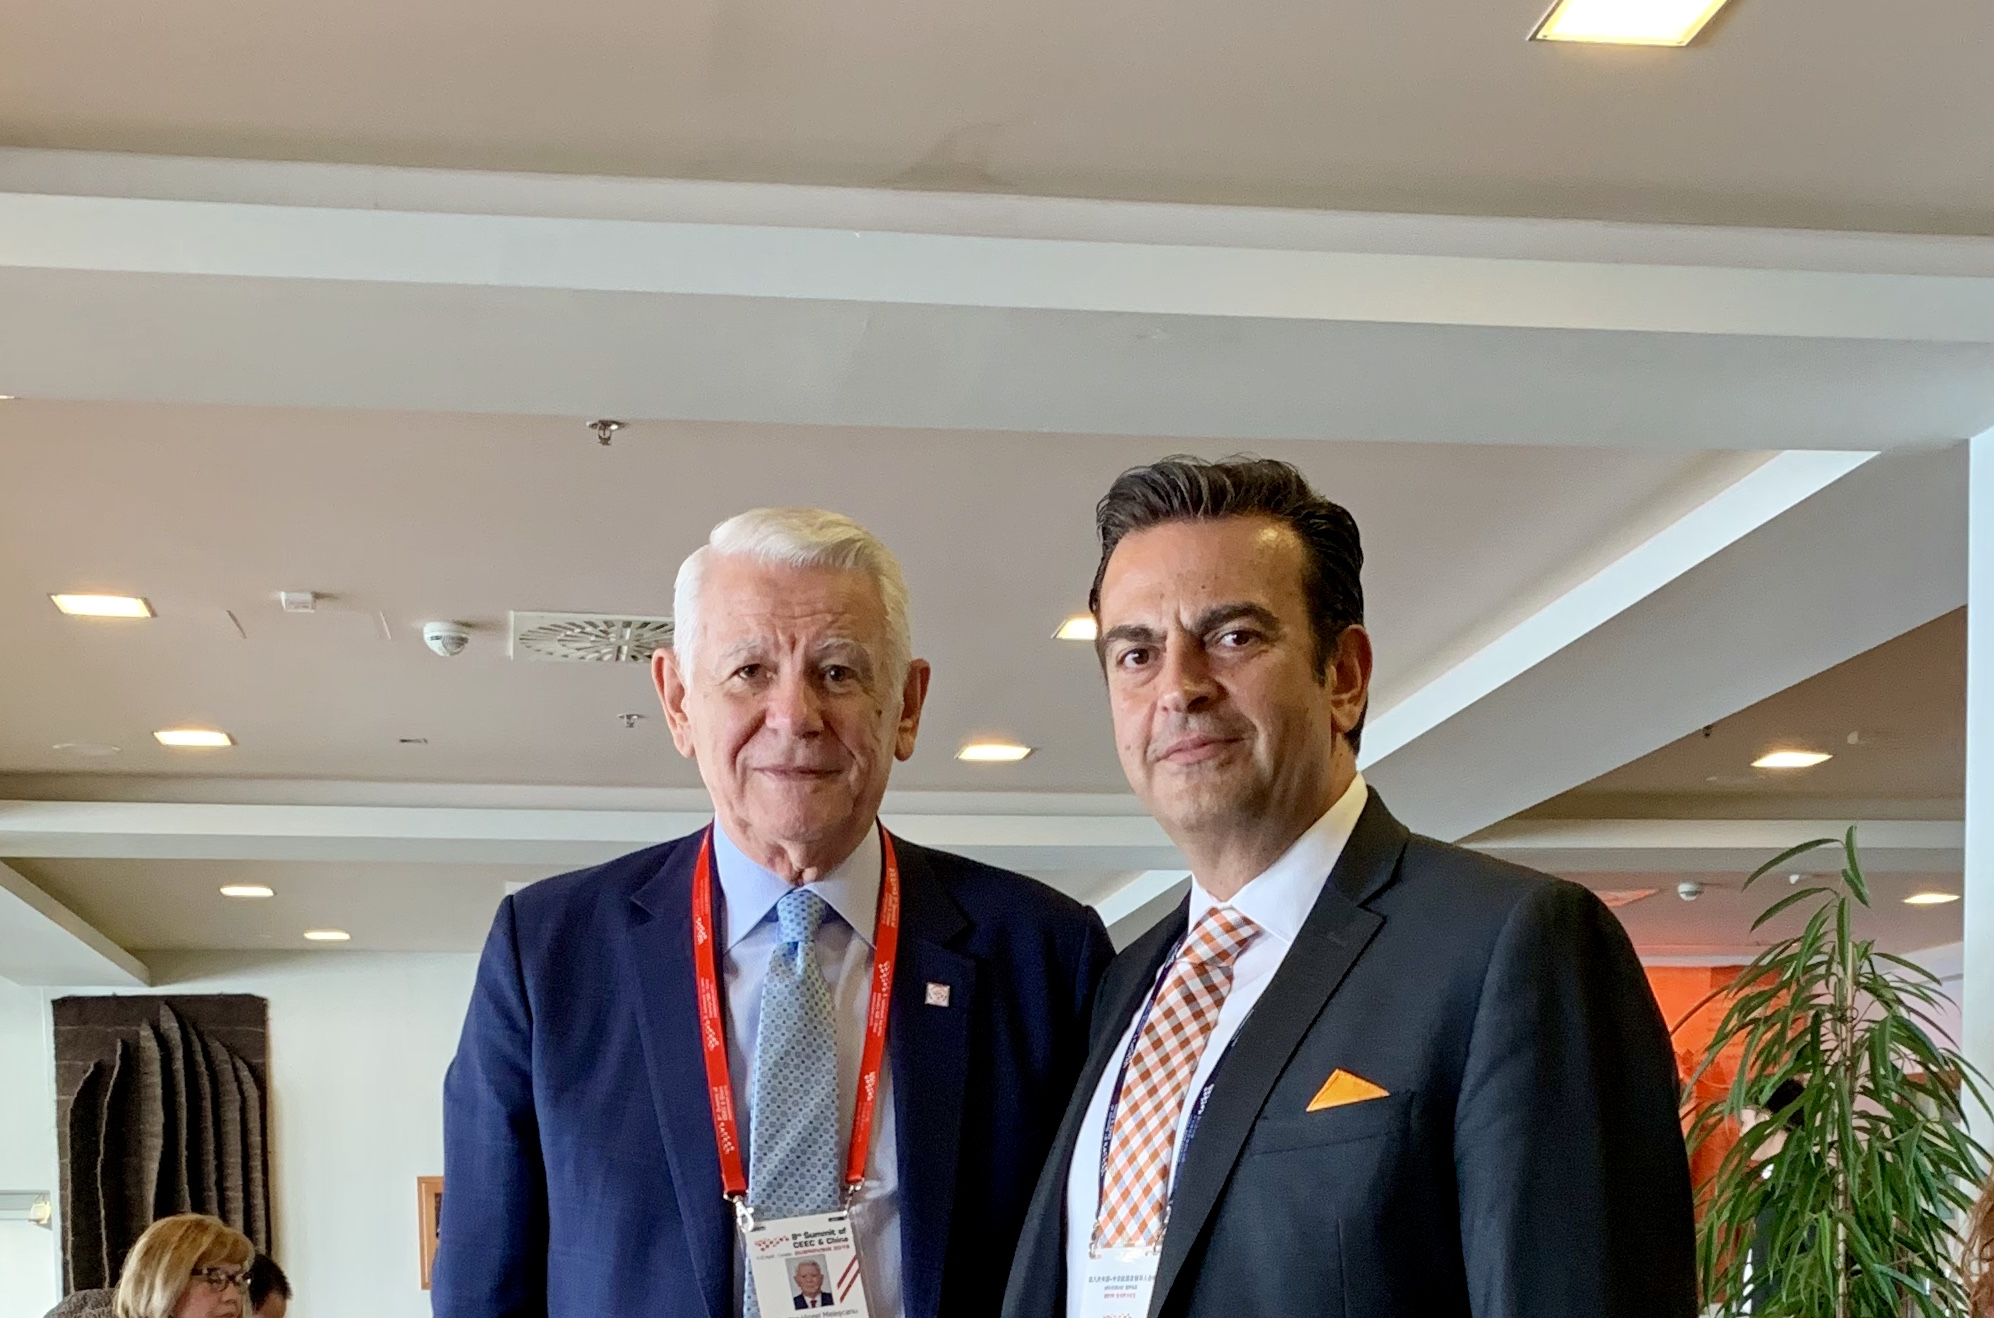 IBNA/ Meleșcanu: I am very grateful for the effort of Greece and North Macedonia